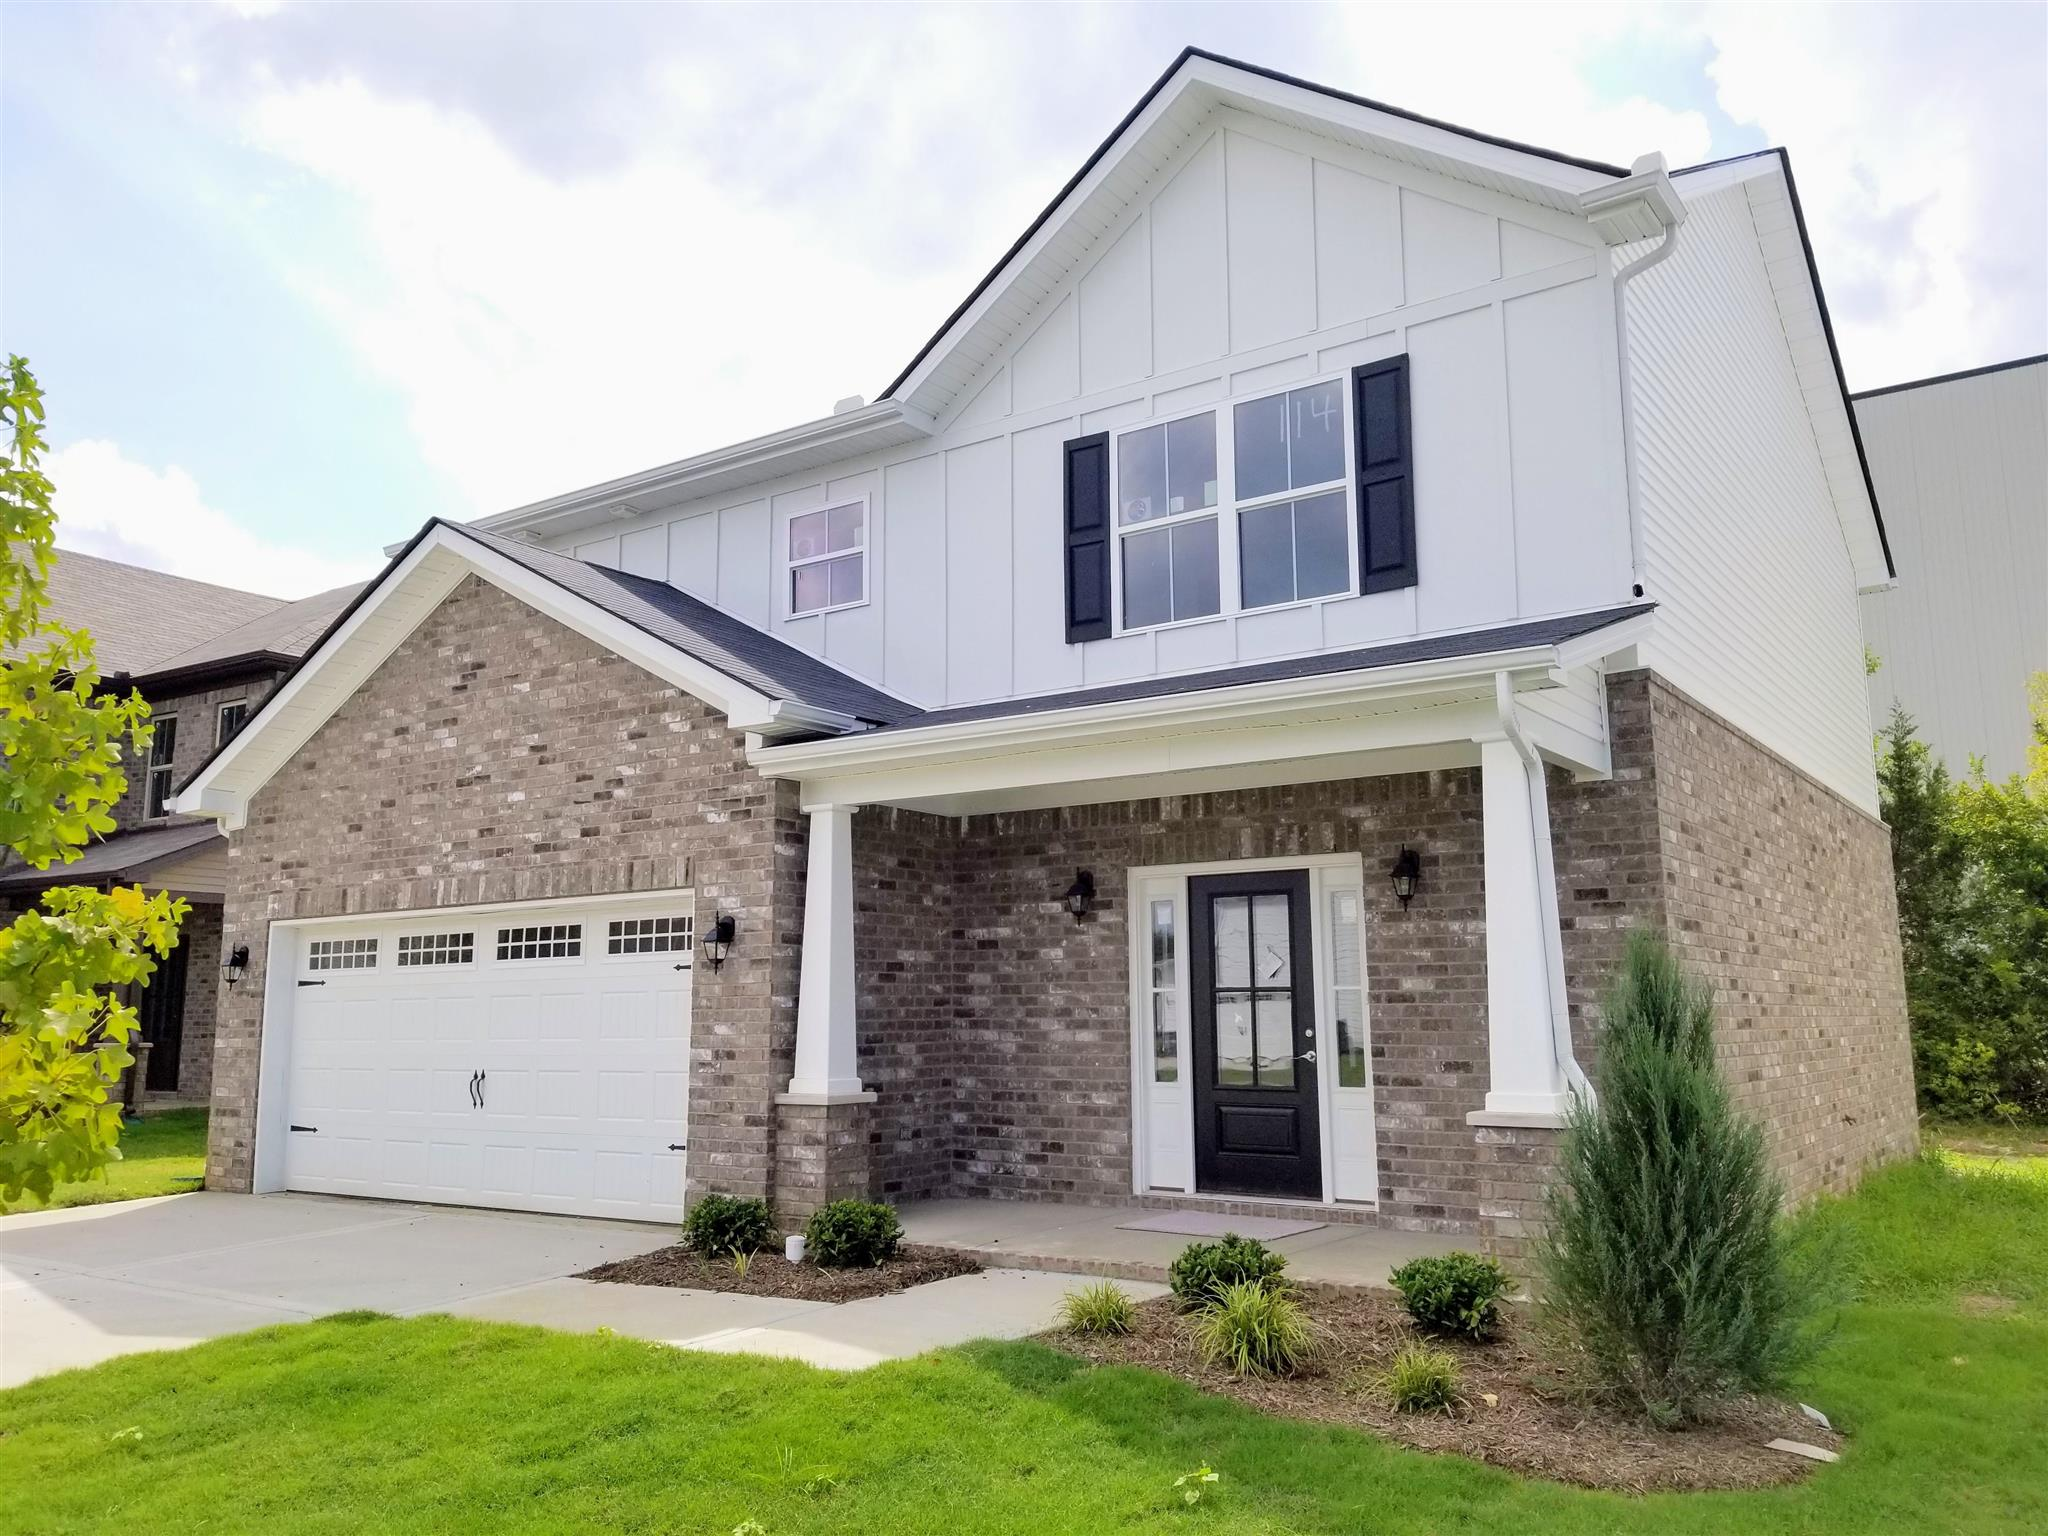 1607 Sunray Dr - Lot 114, Murfreesboro, TN 37127 - Murfreesboro, TN real estate listing